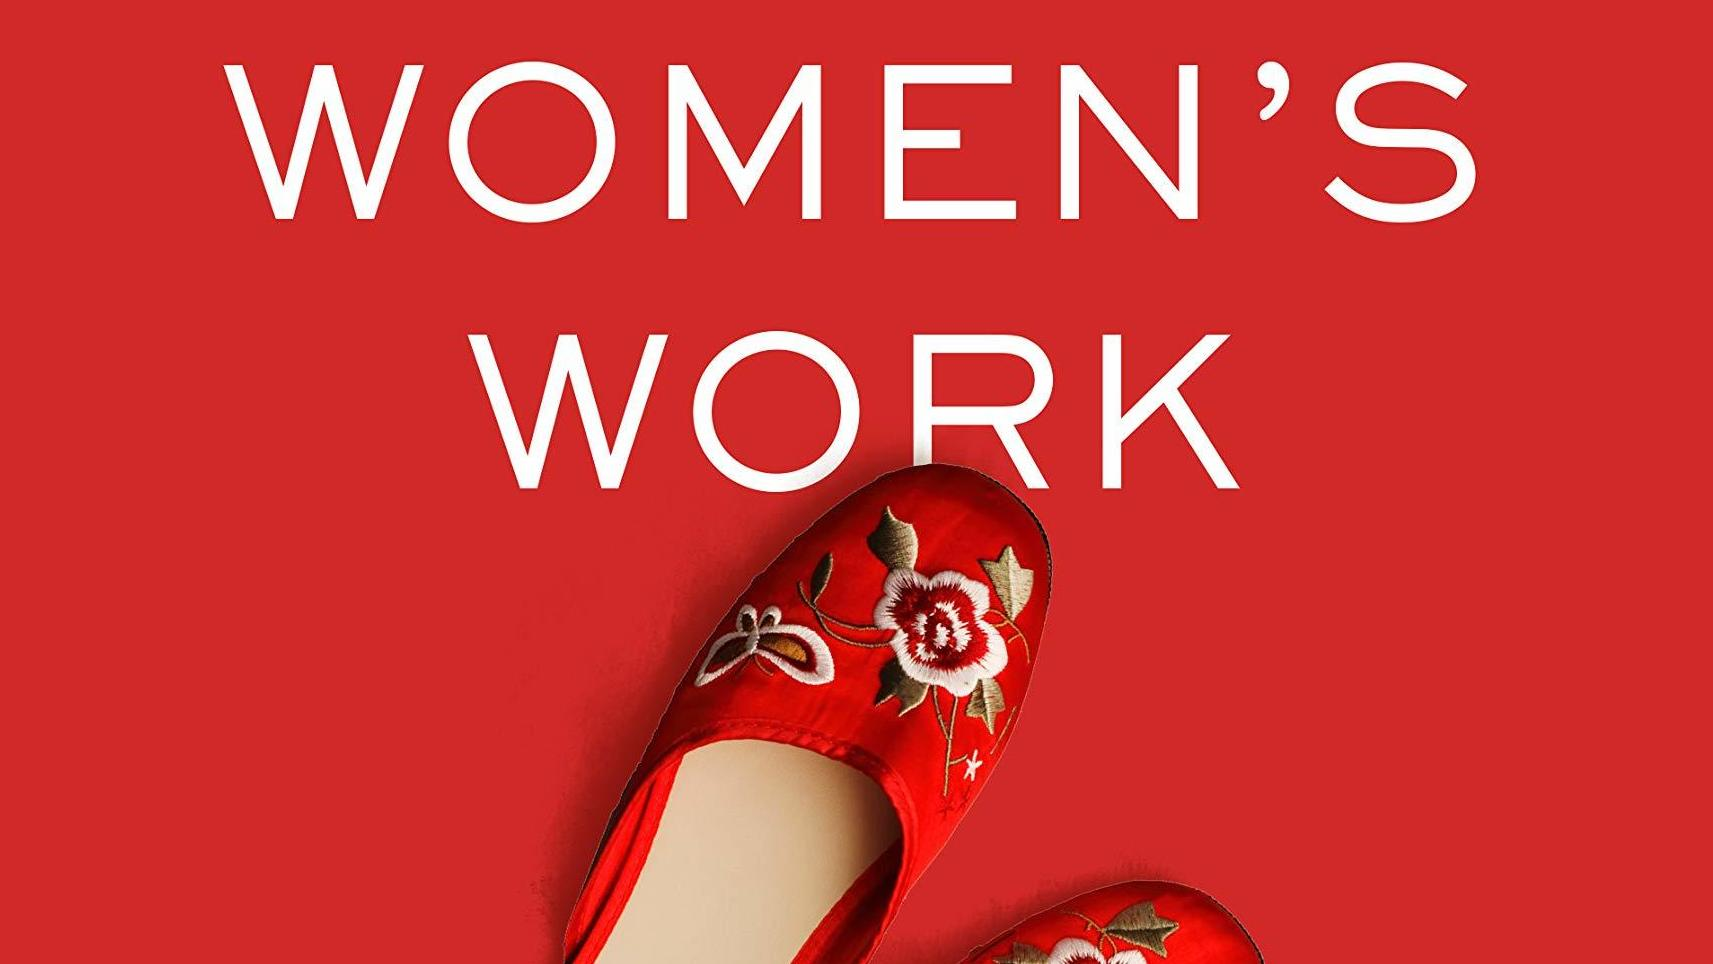 Women's Work: A Reckoning with Work and Home, by Megan Stack